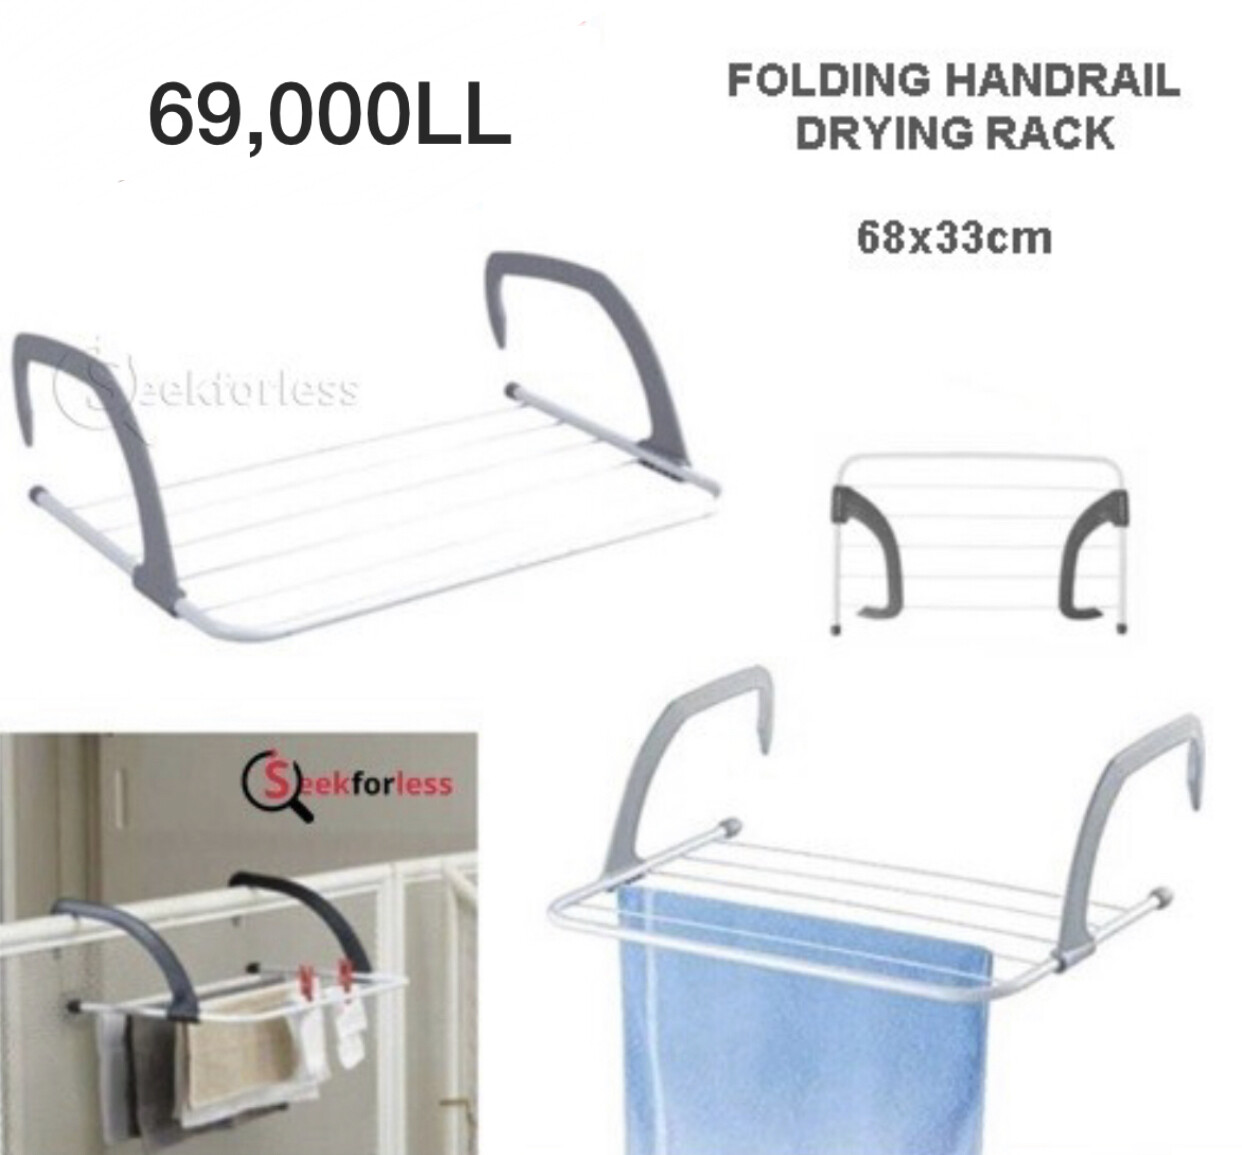 Handrail Drying Rack